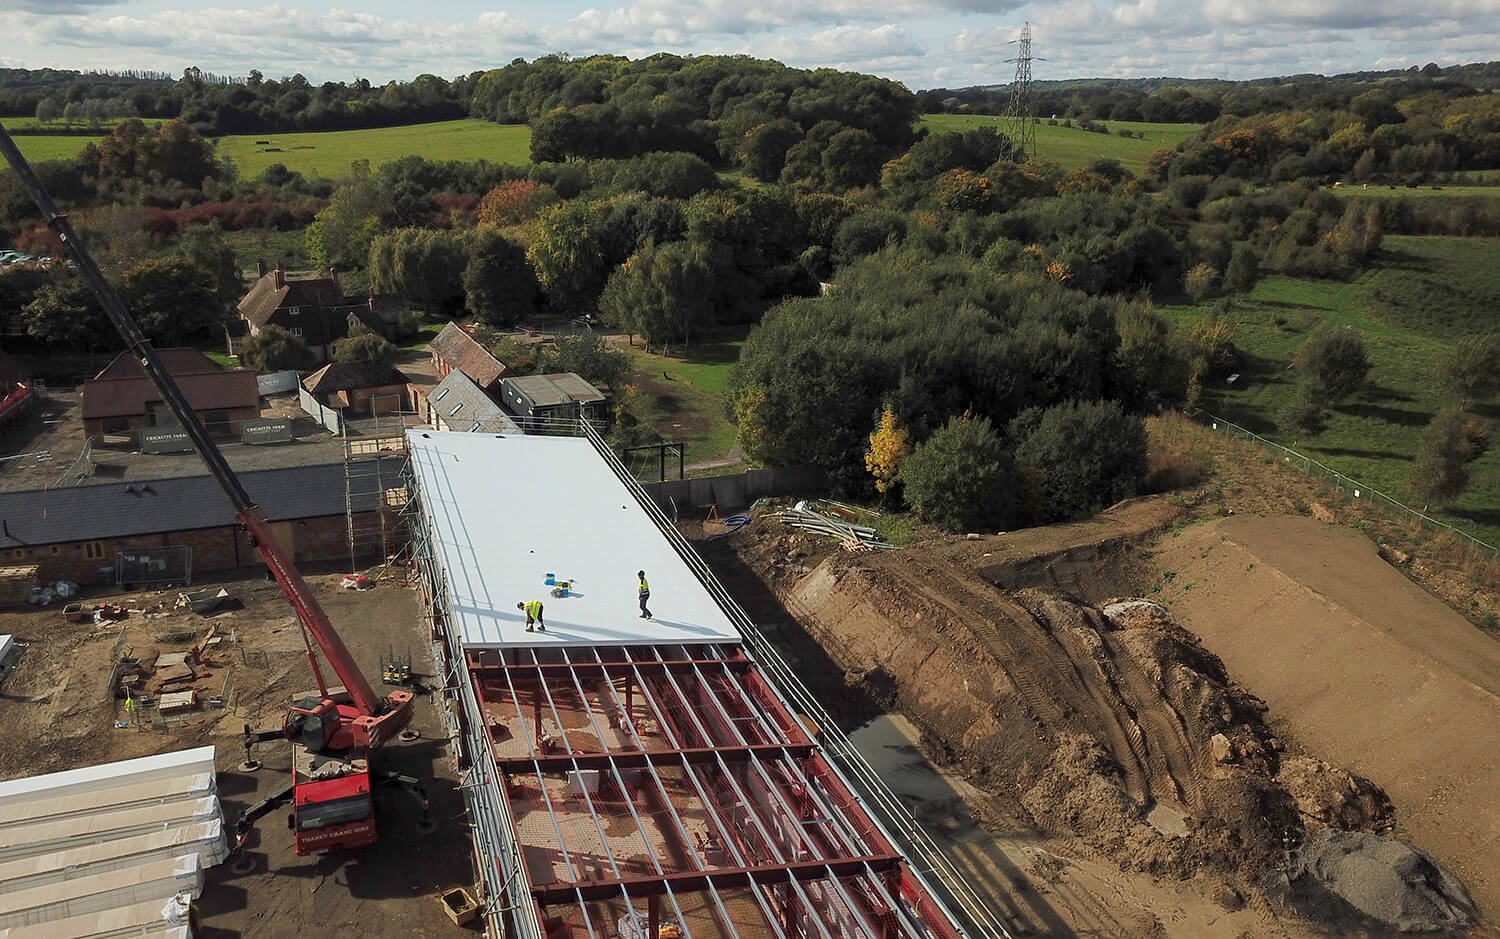 Cricketts Farm Kent Ics Industrial Roofing And Cladding